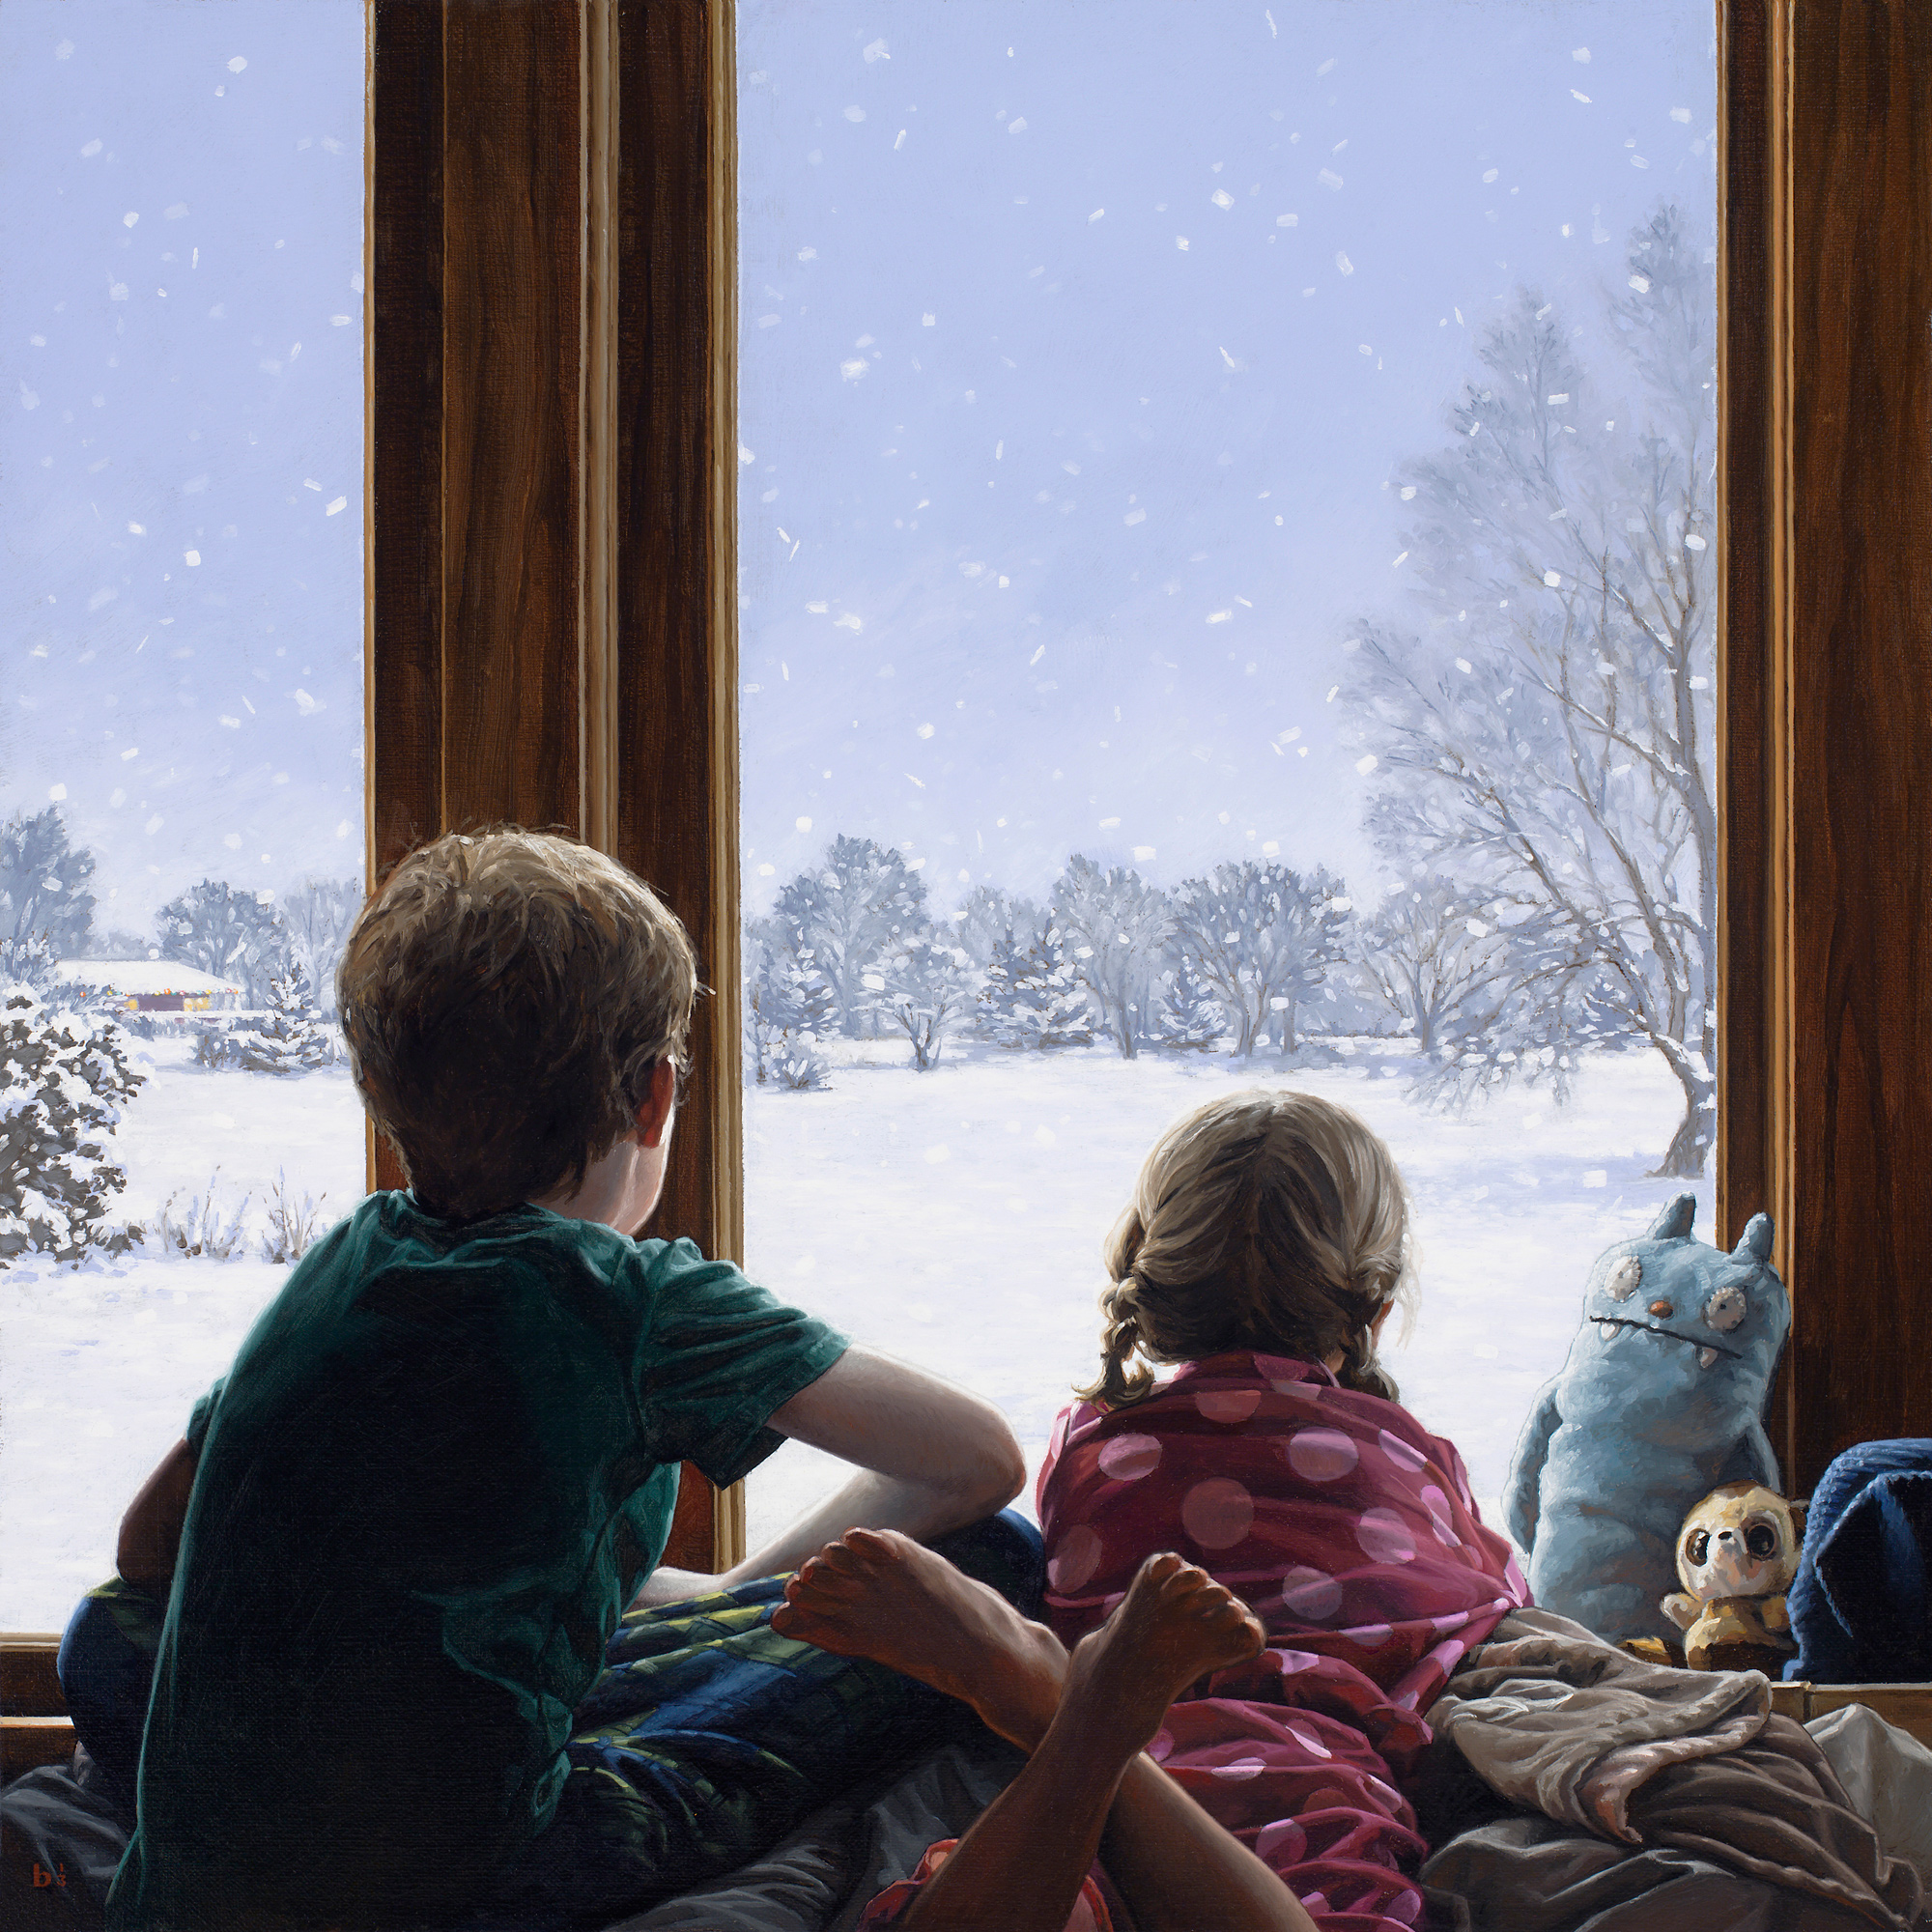 Larsen_Let_It_Snow_18x18_Oil_on_Linen_2013-huge